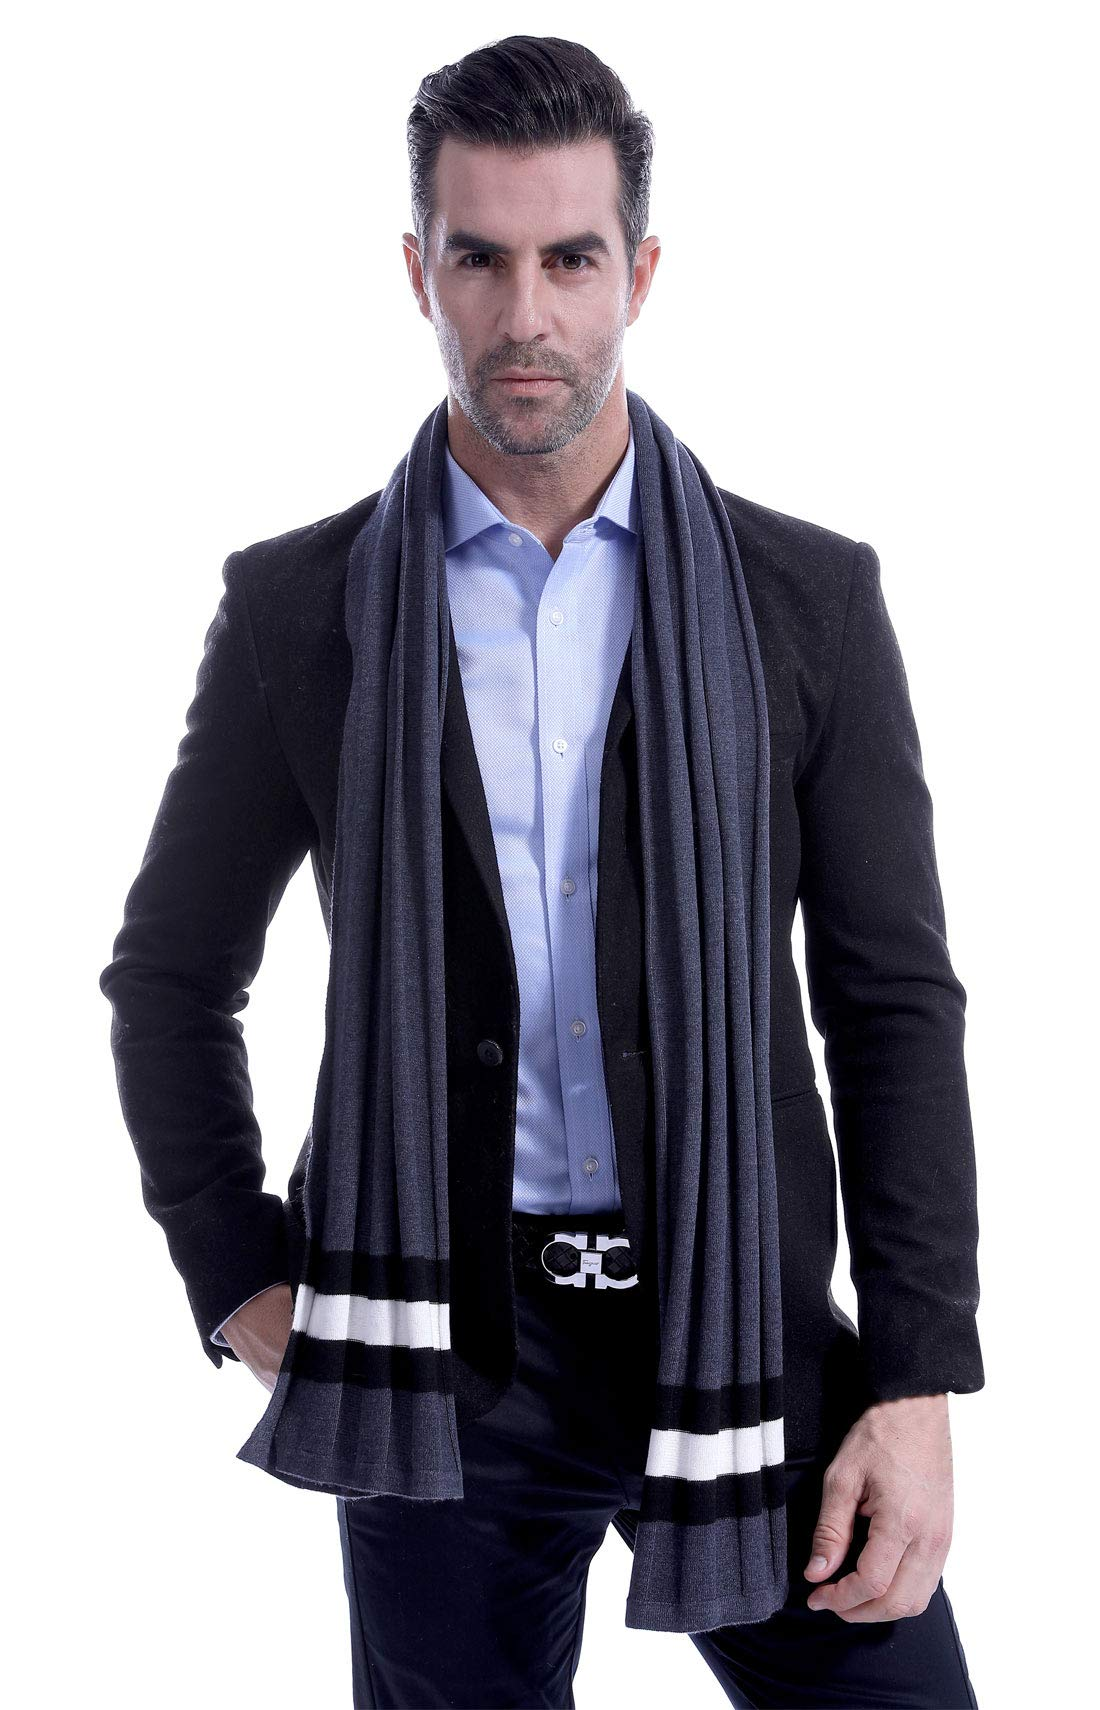 Men Plain Thermal Scarf Knitted Striped Winter Scarves One Size Leisure Business Men Warm Neckerchief Gray by Panegy (Image #1)